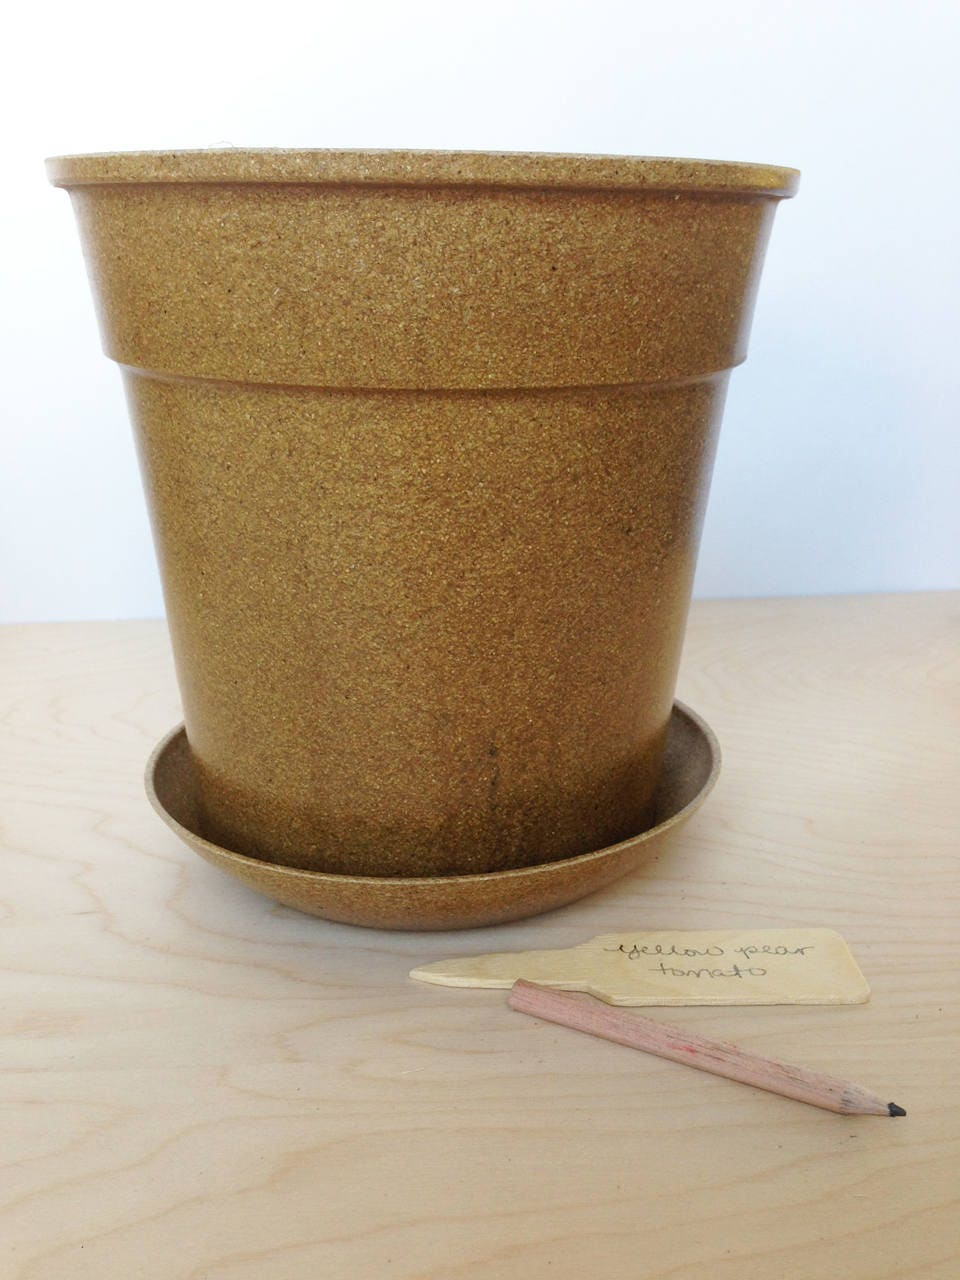 pots how garden pin planters to create grow with showy container shade easy plants and for all designs lists plant planter using foliage flowers planting beautiful colorful